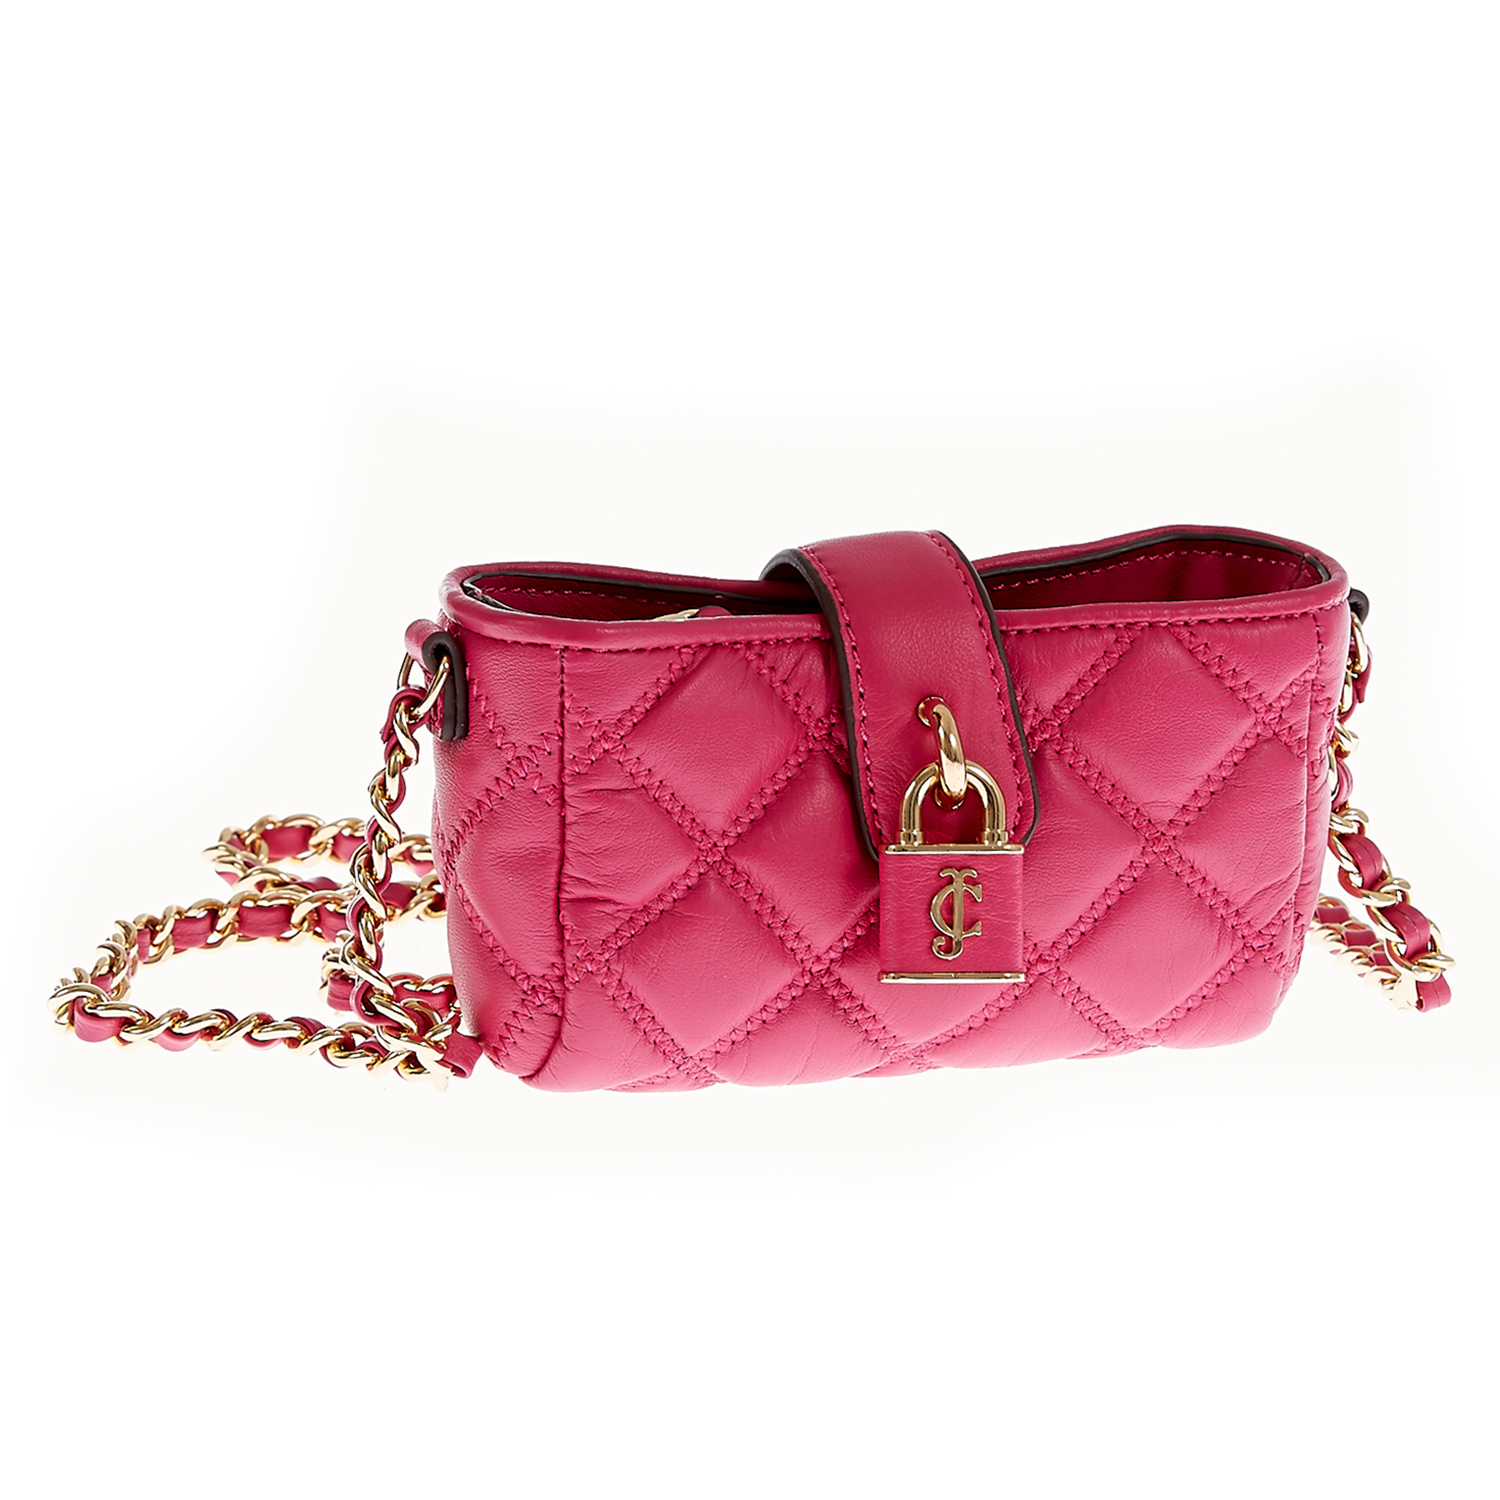 JUICY COUTURE – Γυναικεία τσάντα Juicy Couture φούξια 1409505.0-00F1